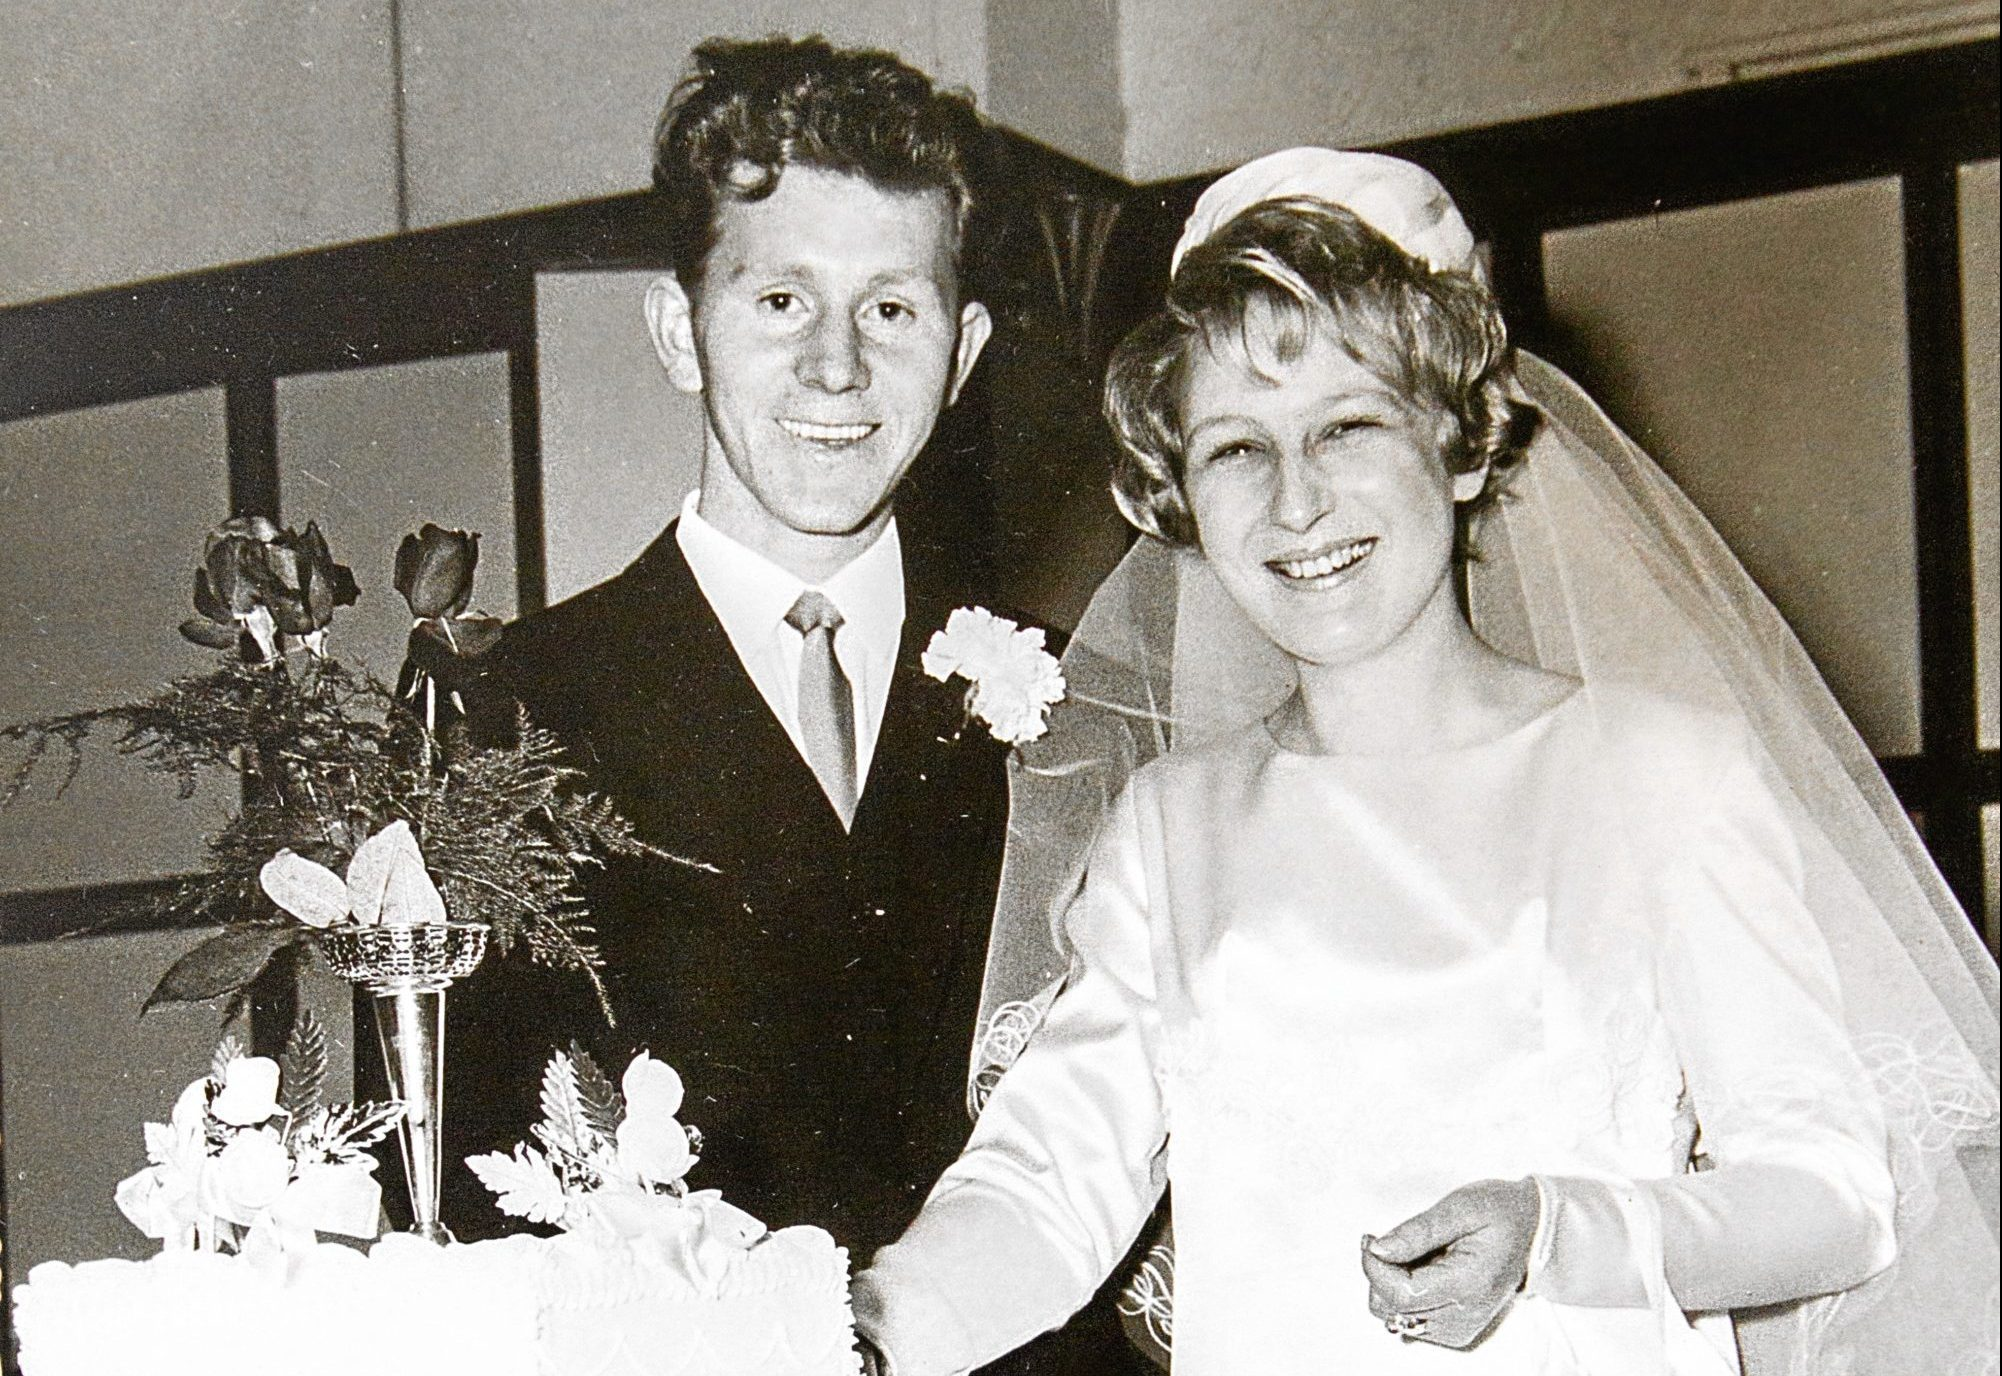 Jimmy Spink and wife Phylis Spink on their wedding day 50 years ago